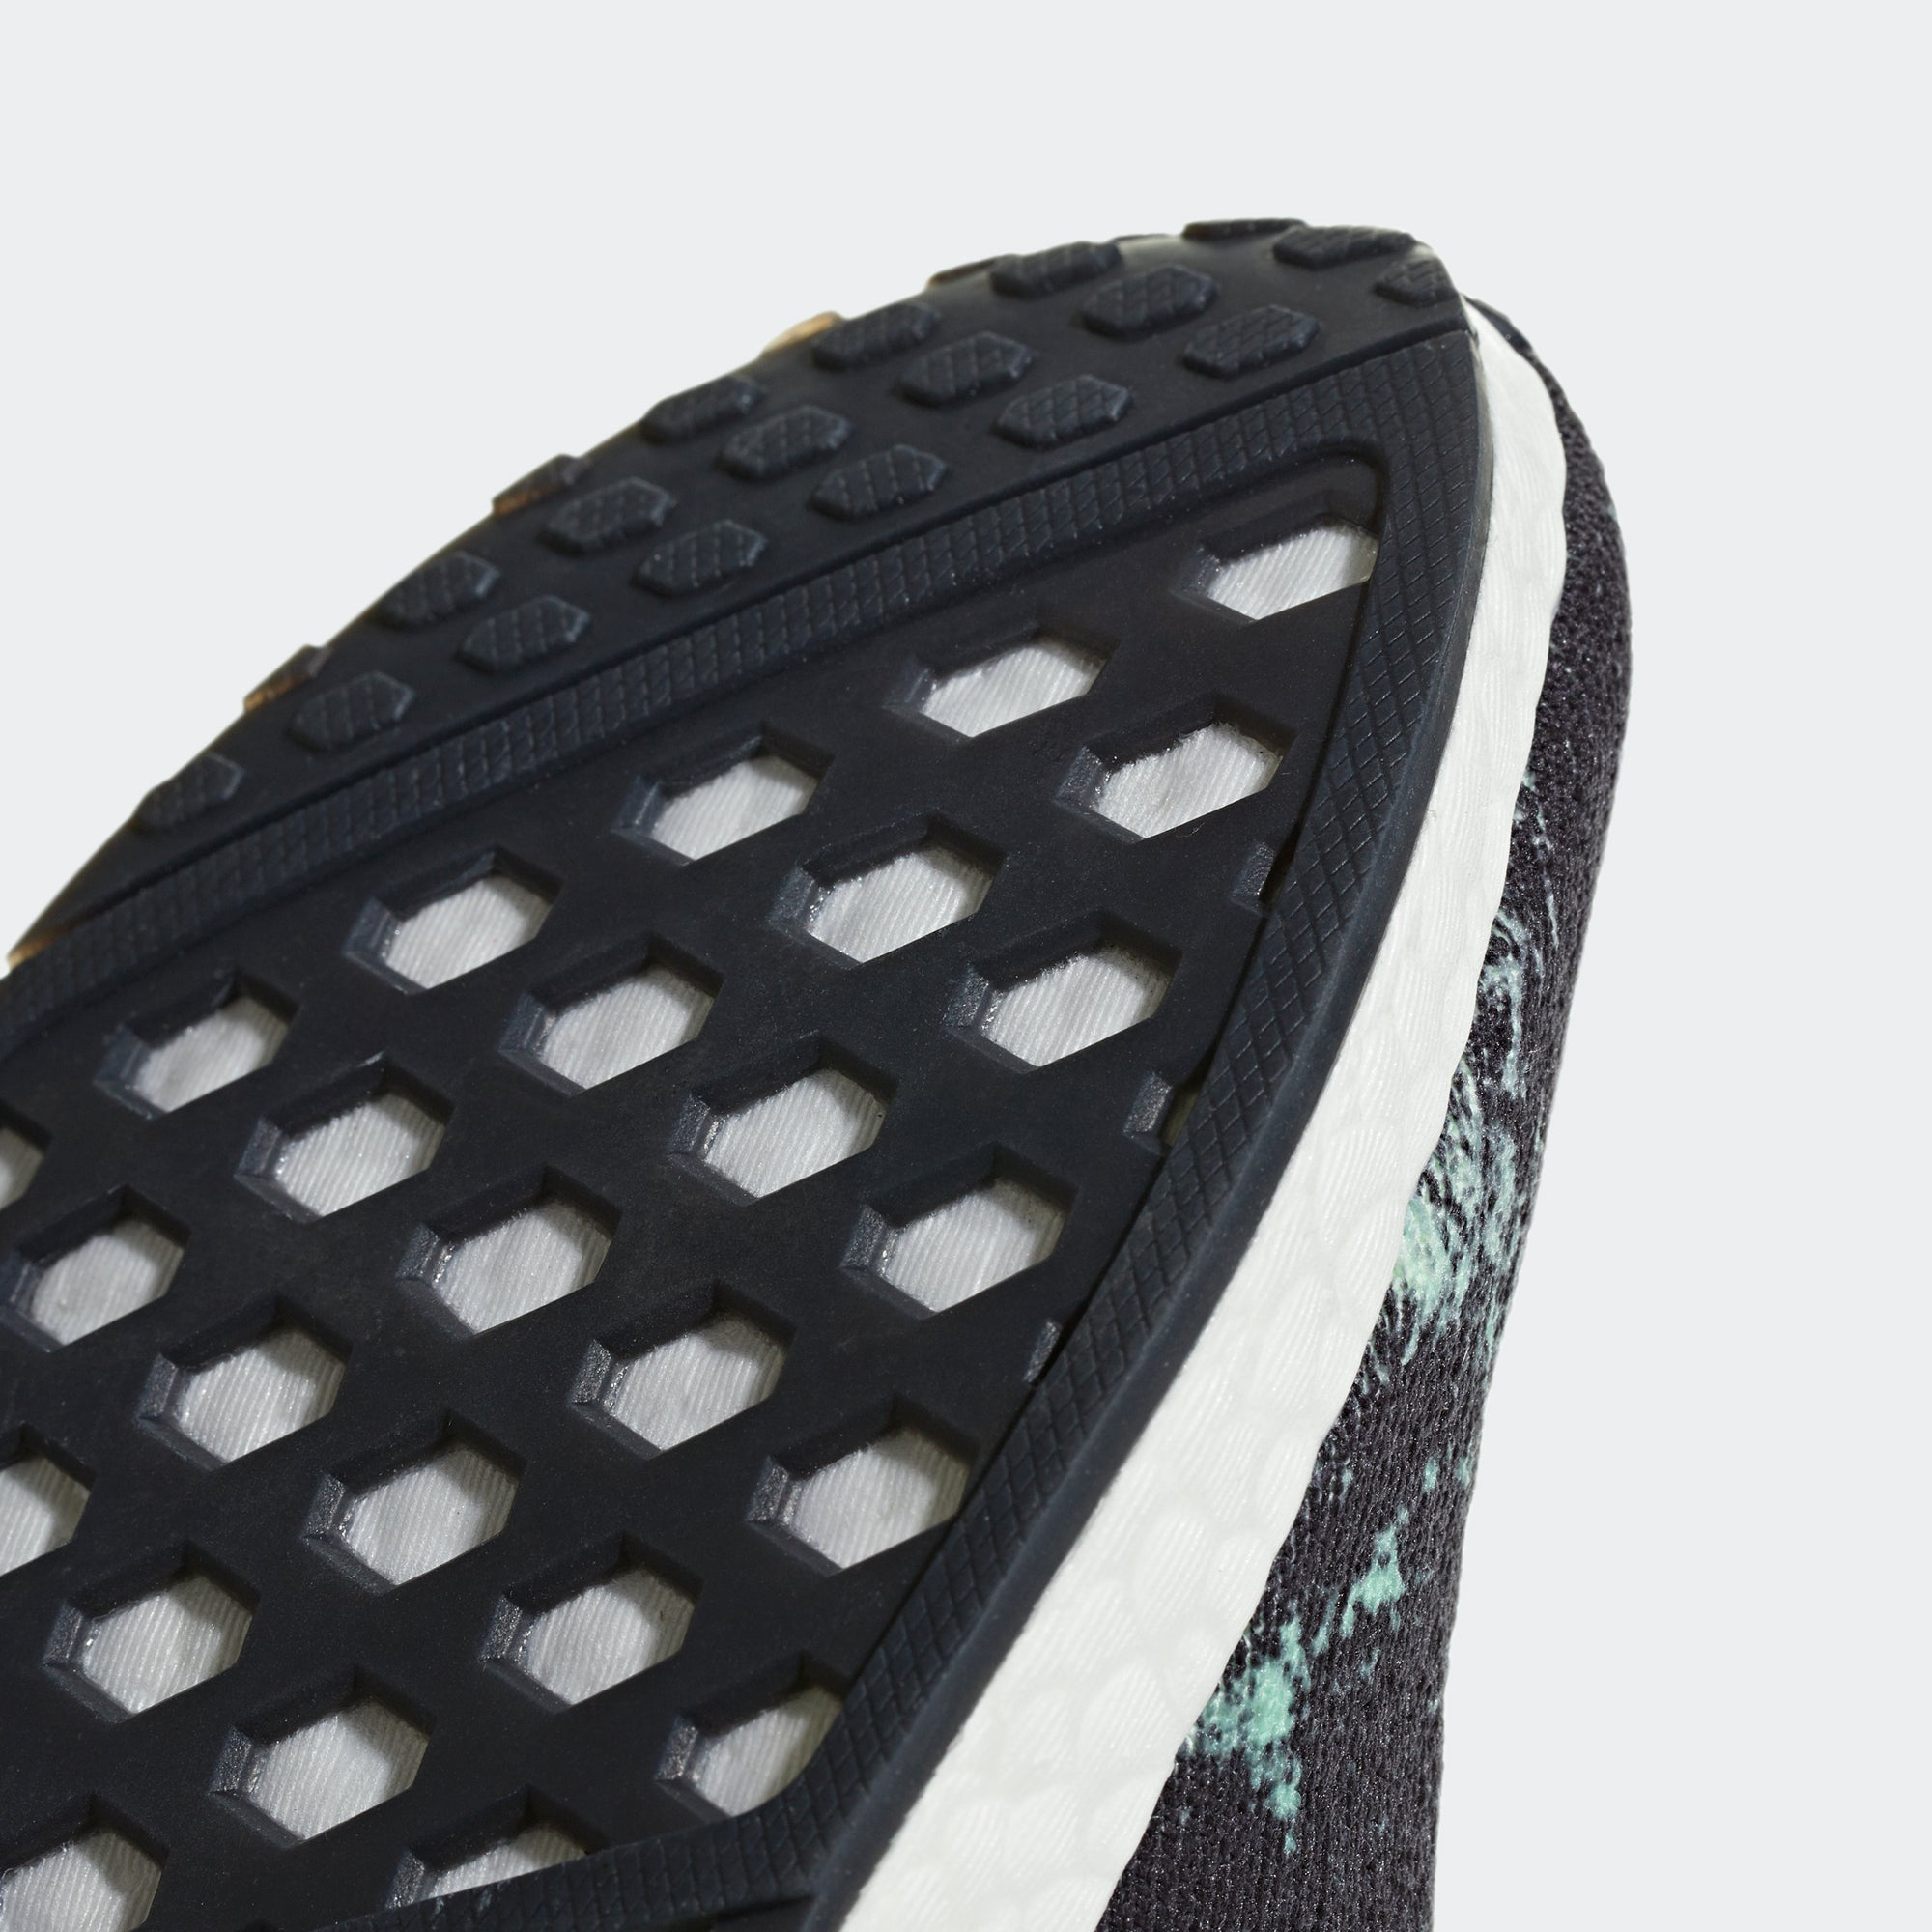 100% authentic 2b184 21705 adidas NMD_R1 Primeknit Shoes Green Marble BB7996 | Chicago ...